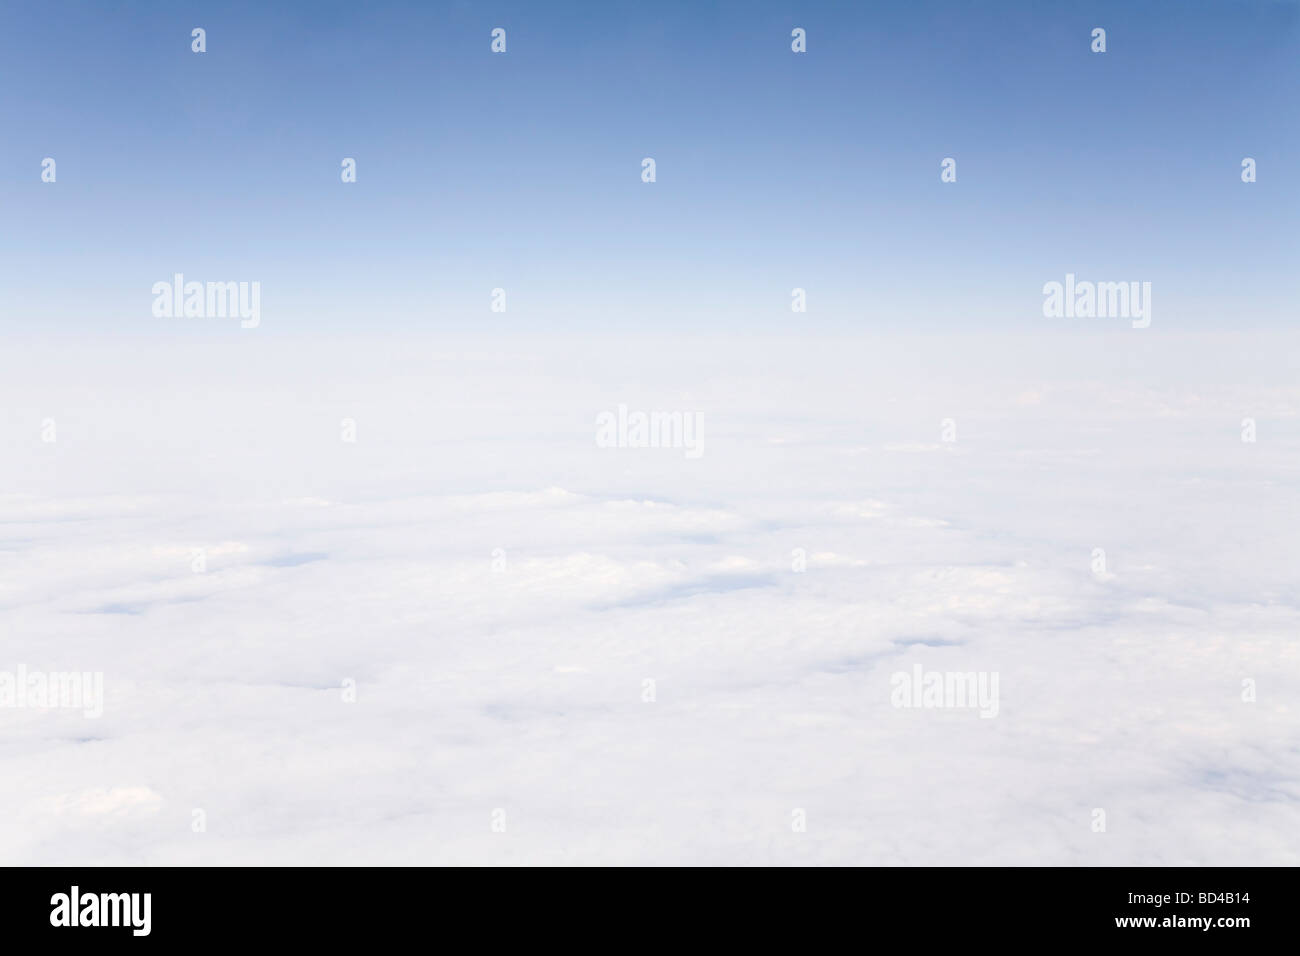 Cloud formations, skyline and stratosphere taken from high altitude - Stock Image